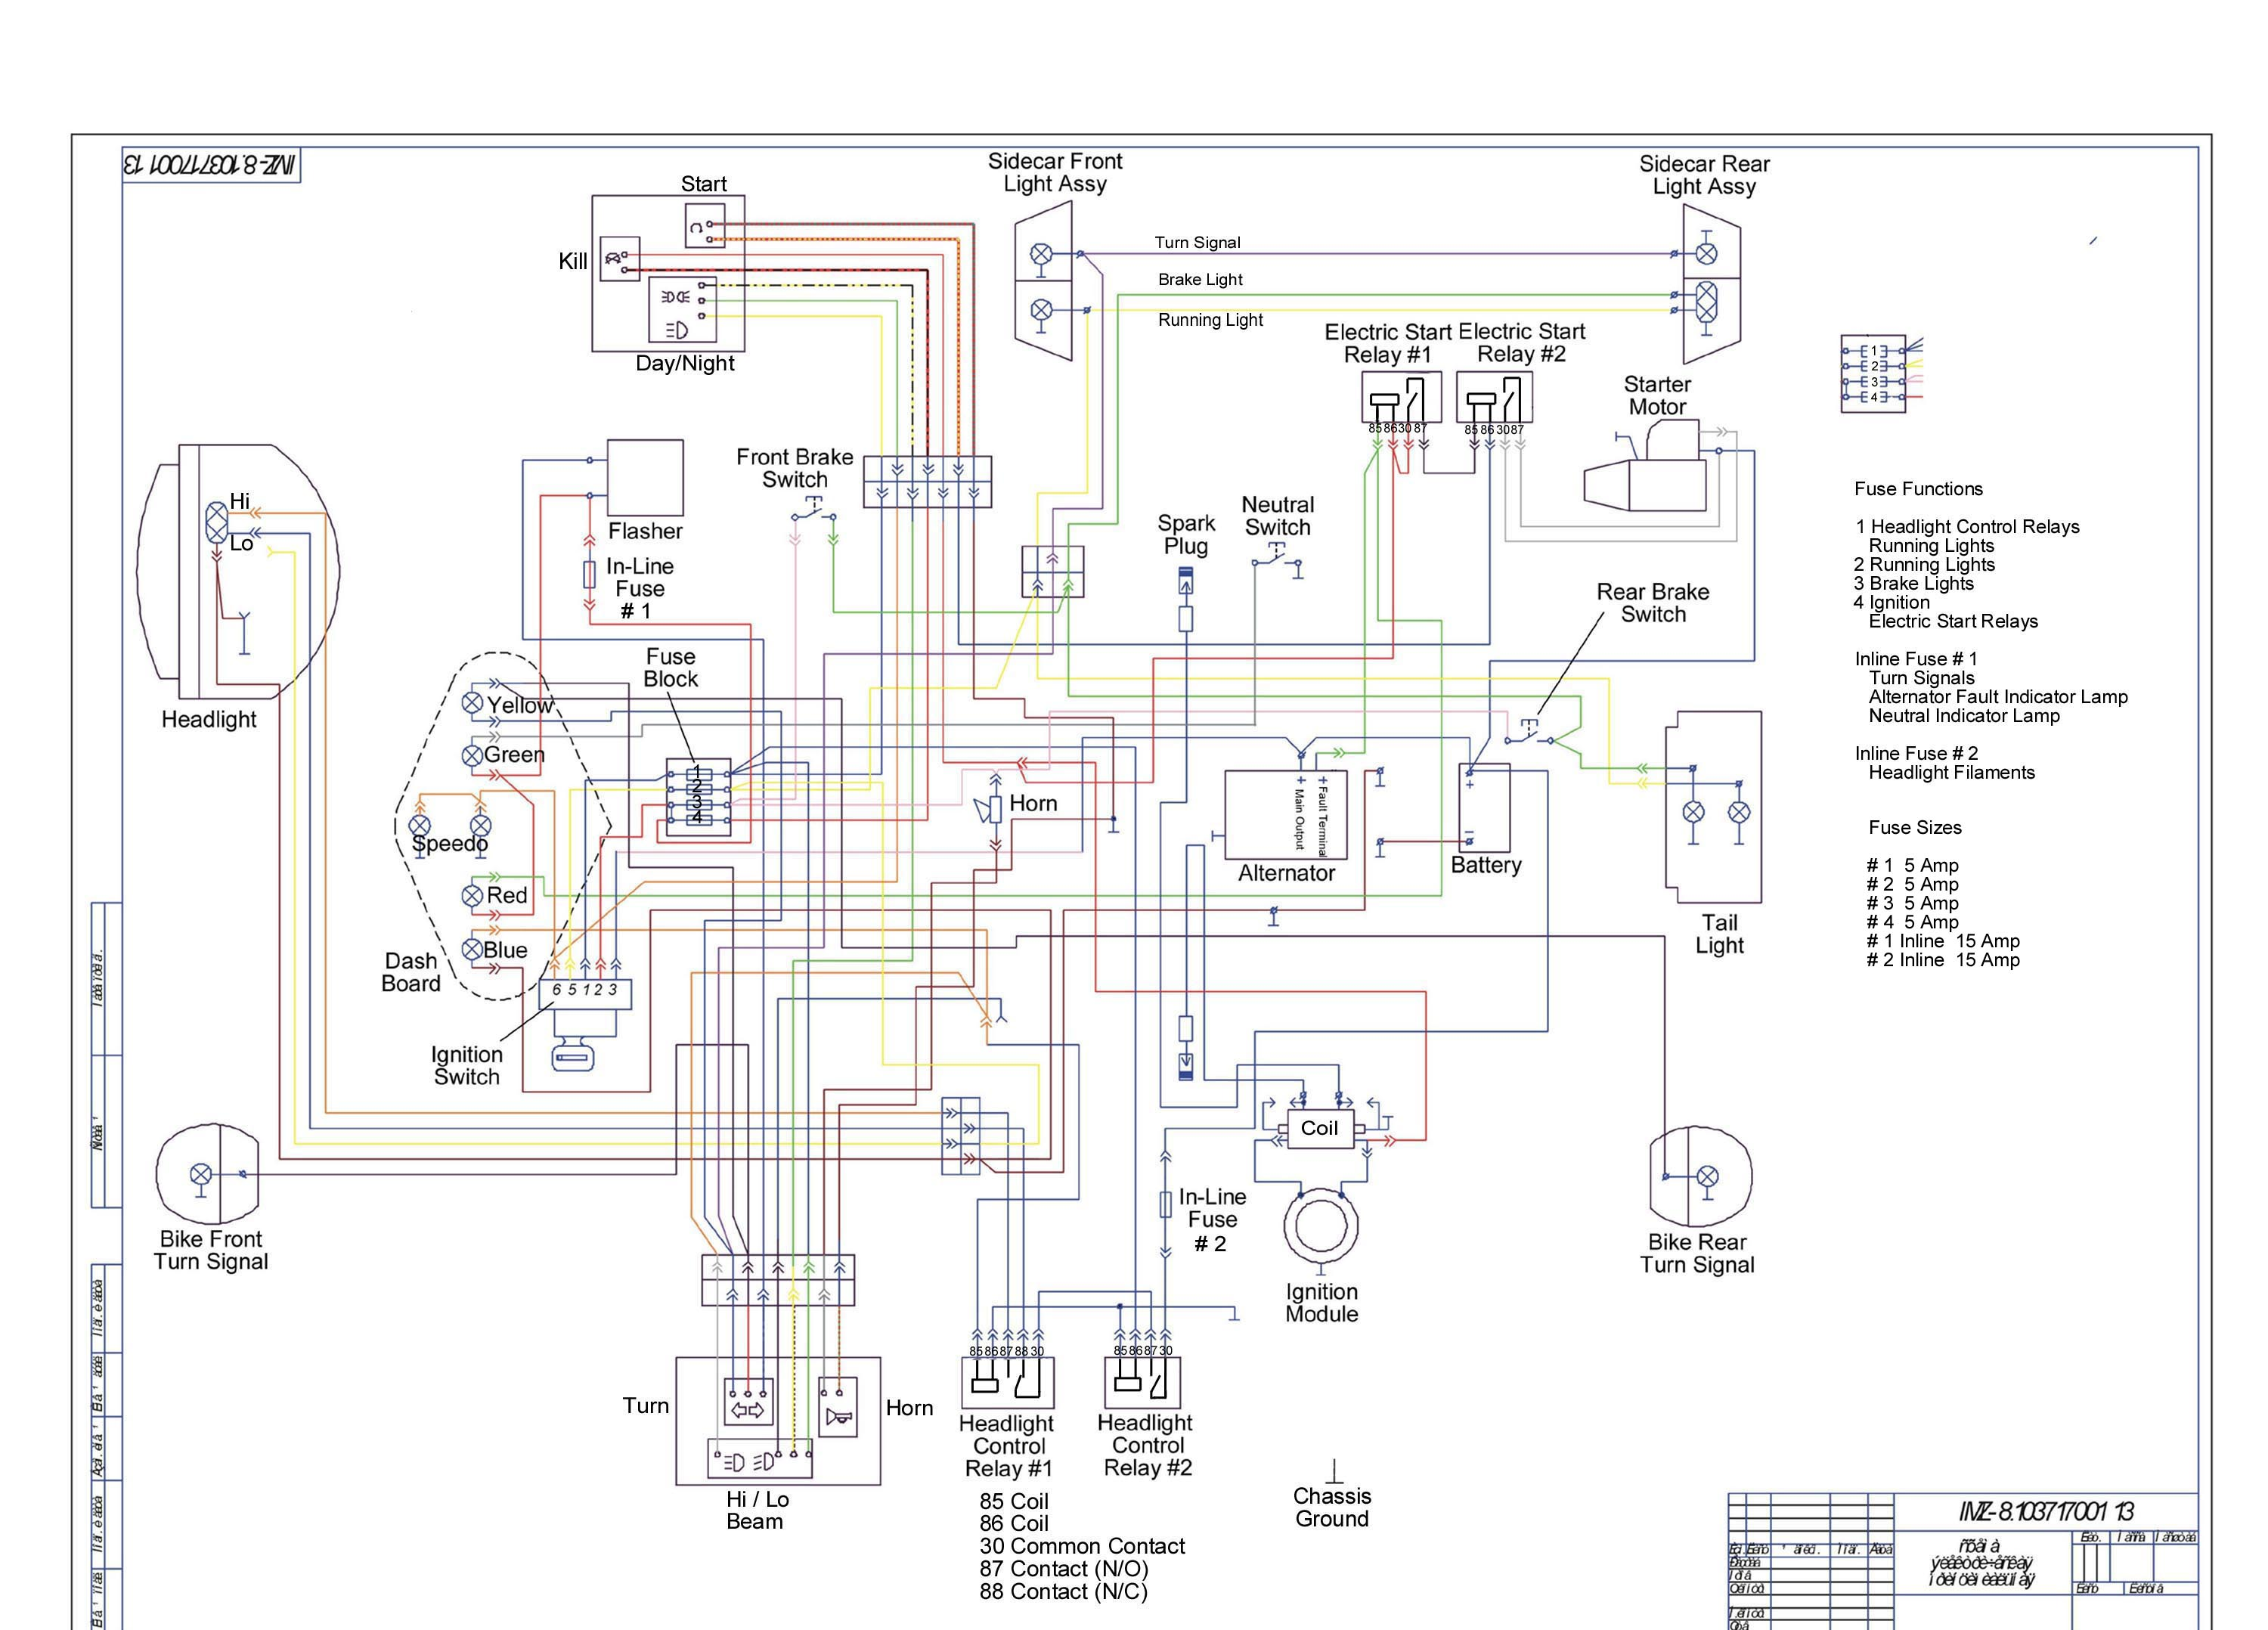 Geo Engine Diagram Html further 94 Ford Ranger 4 0 Firing Order Diagram Wiring further Transit Connect Fuse Box Diagram also 94 Geo Prizm Fuse Box Diagram as well Chevy Fuel Filter Diagram. on 1990 geo metro fuse box diagram